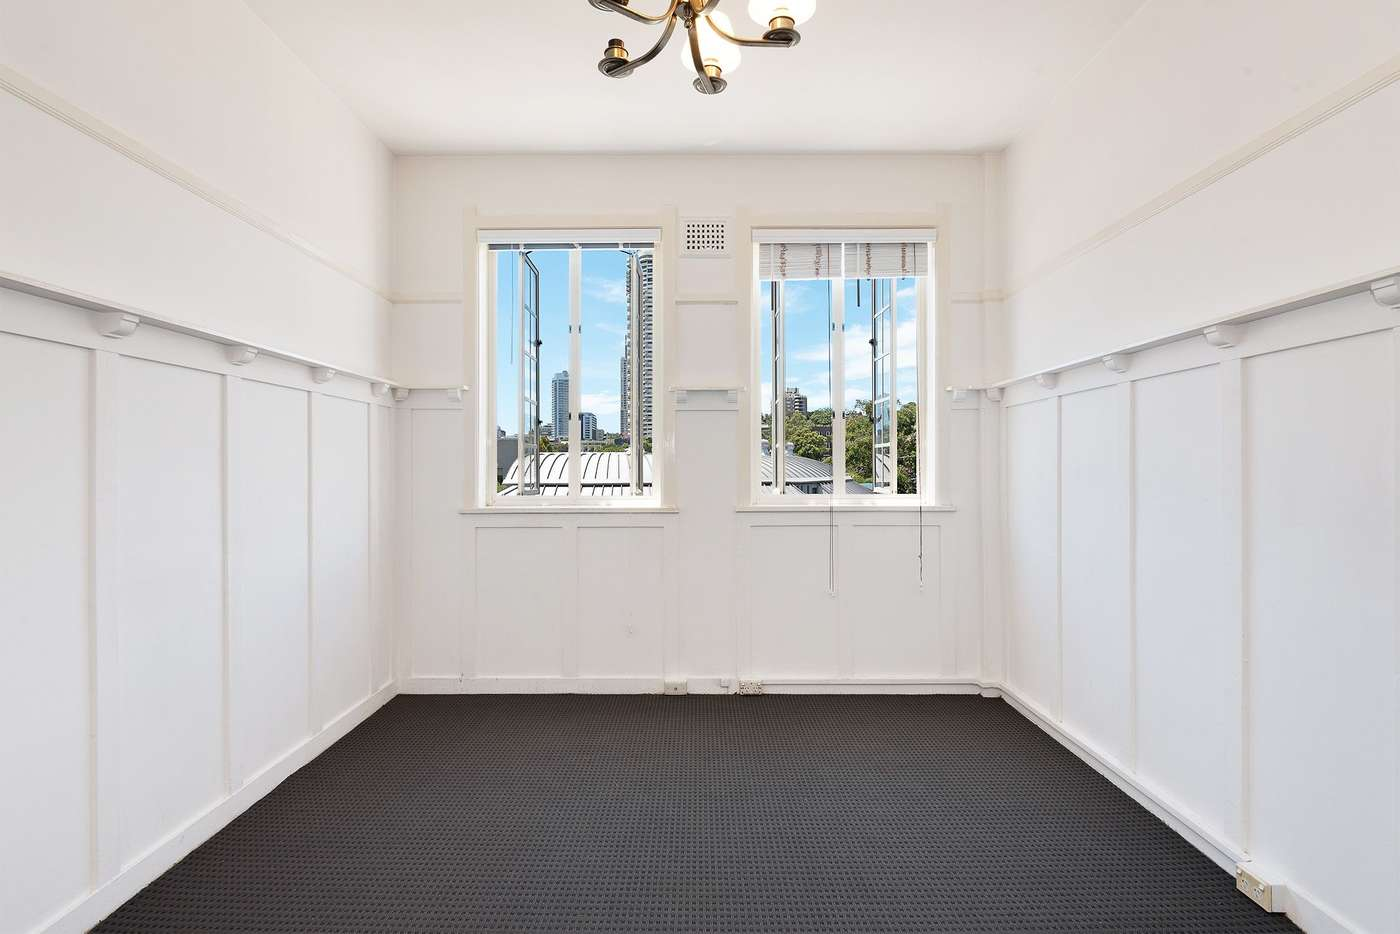 Main view of Homely apartment listing, 35/6 Stanley Street, Darlinghurst NSW 2010